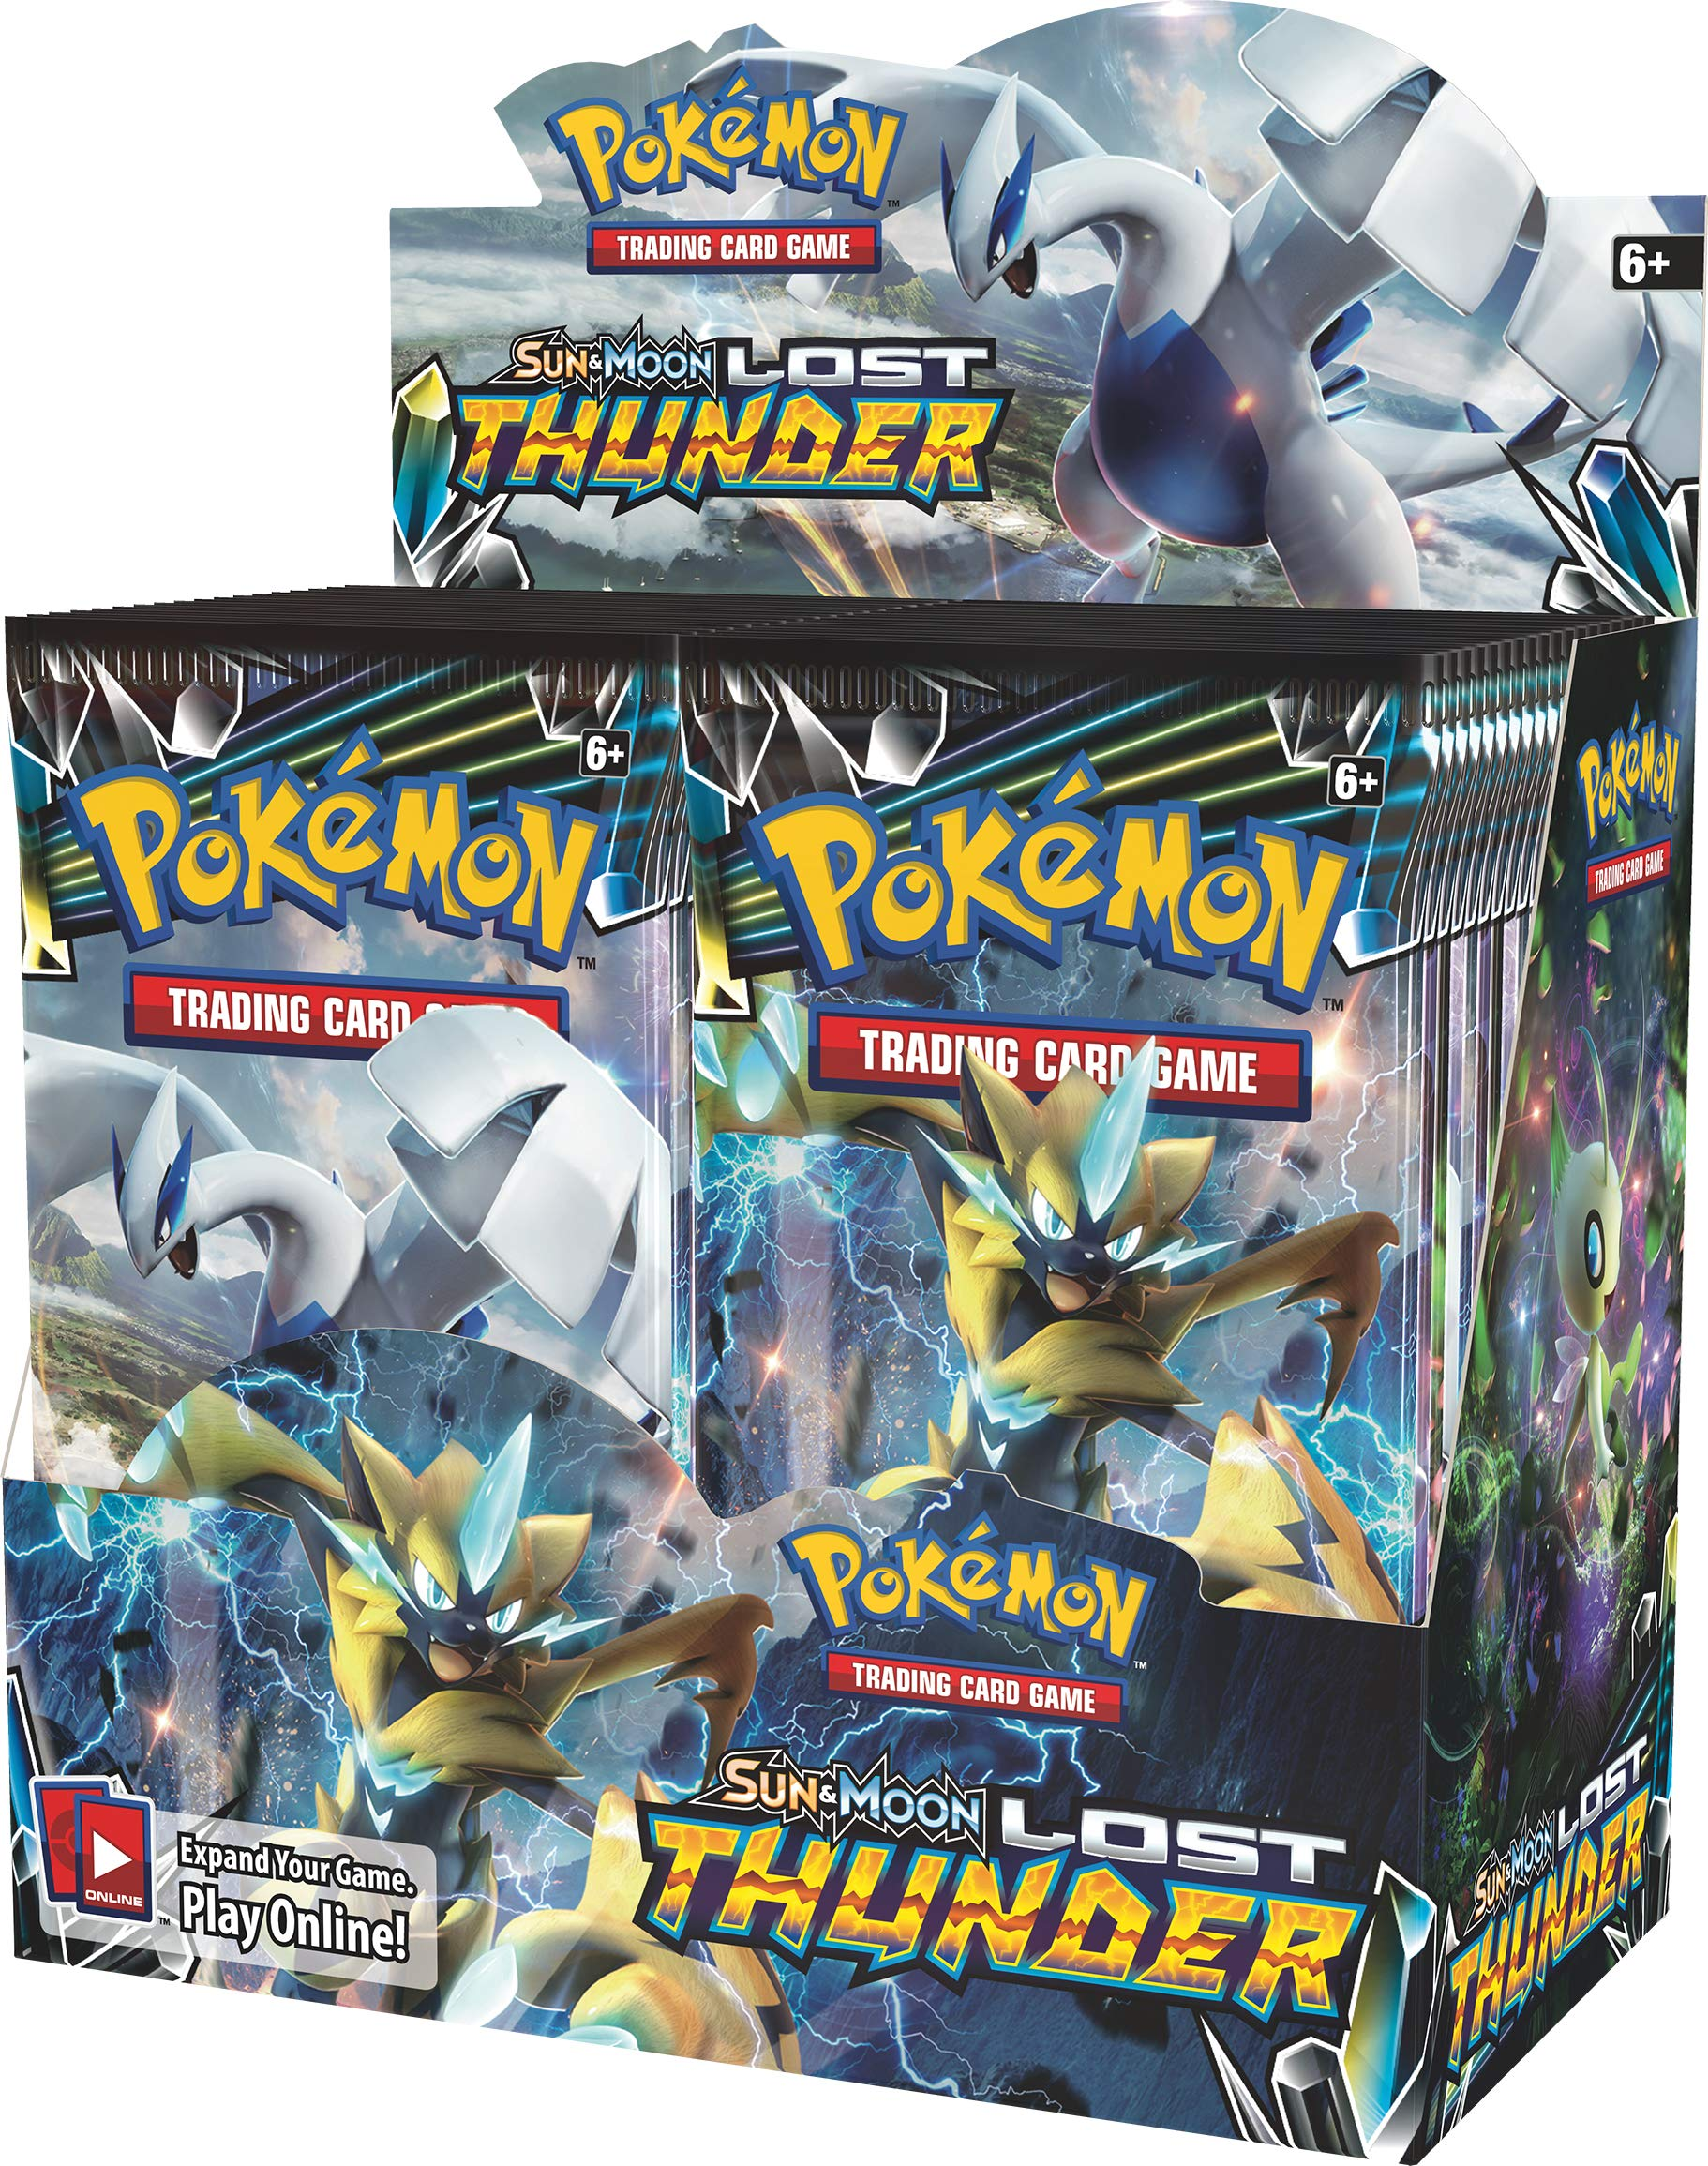 Pokemon 820650814556 TCG: Sun & Moon Lost Thunder Booster Box (Pack of 36) by Pokemon (Image #1)